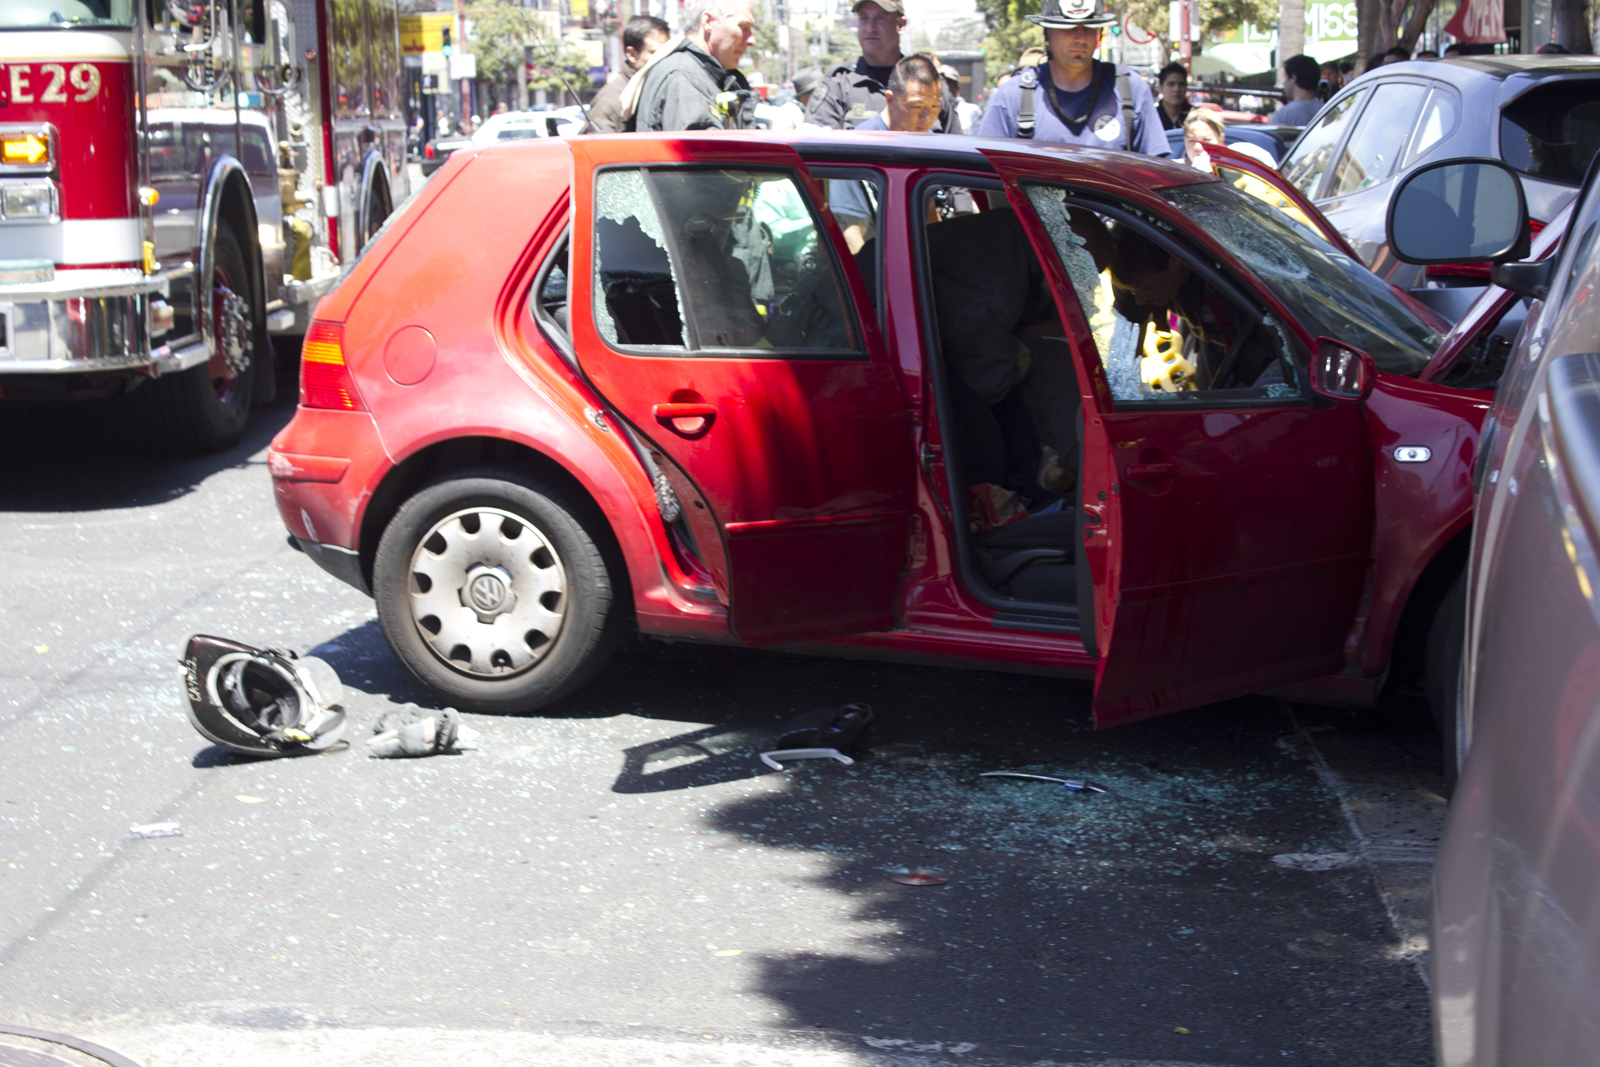 Car Crashes Into Parked Cars on Mission and 17th